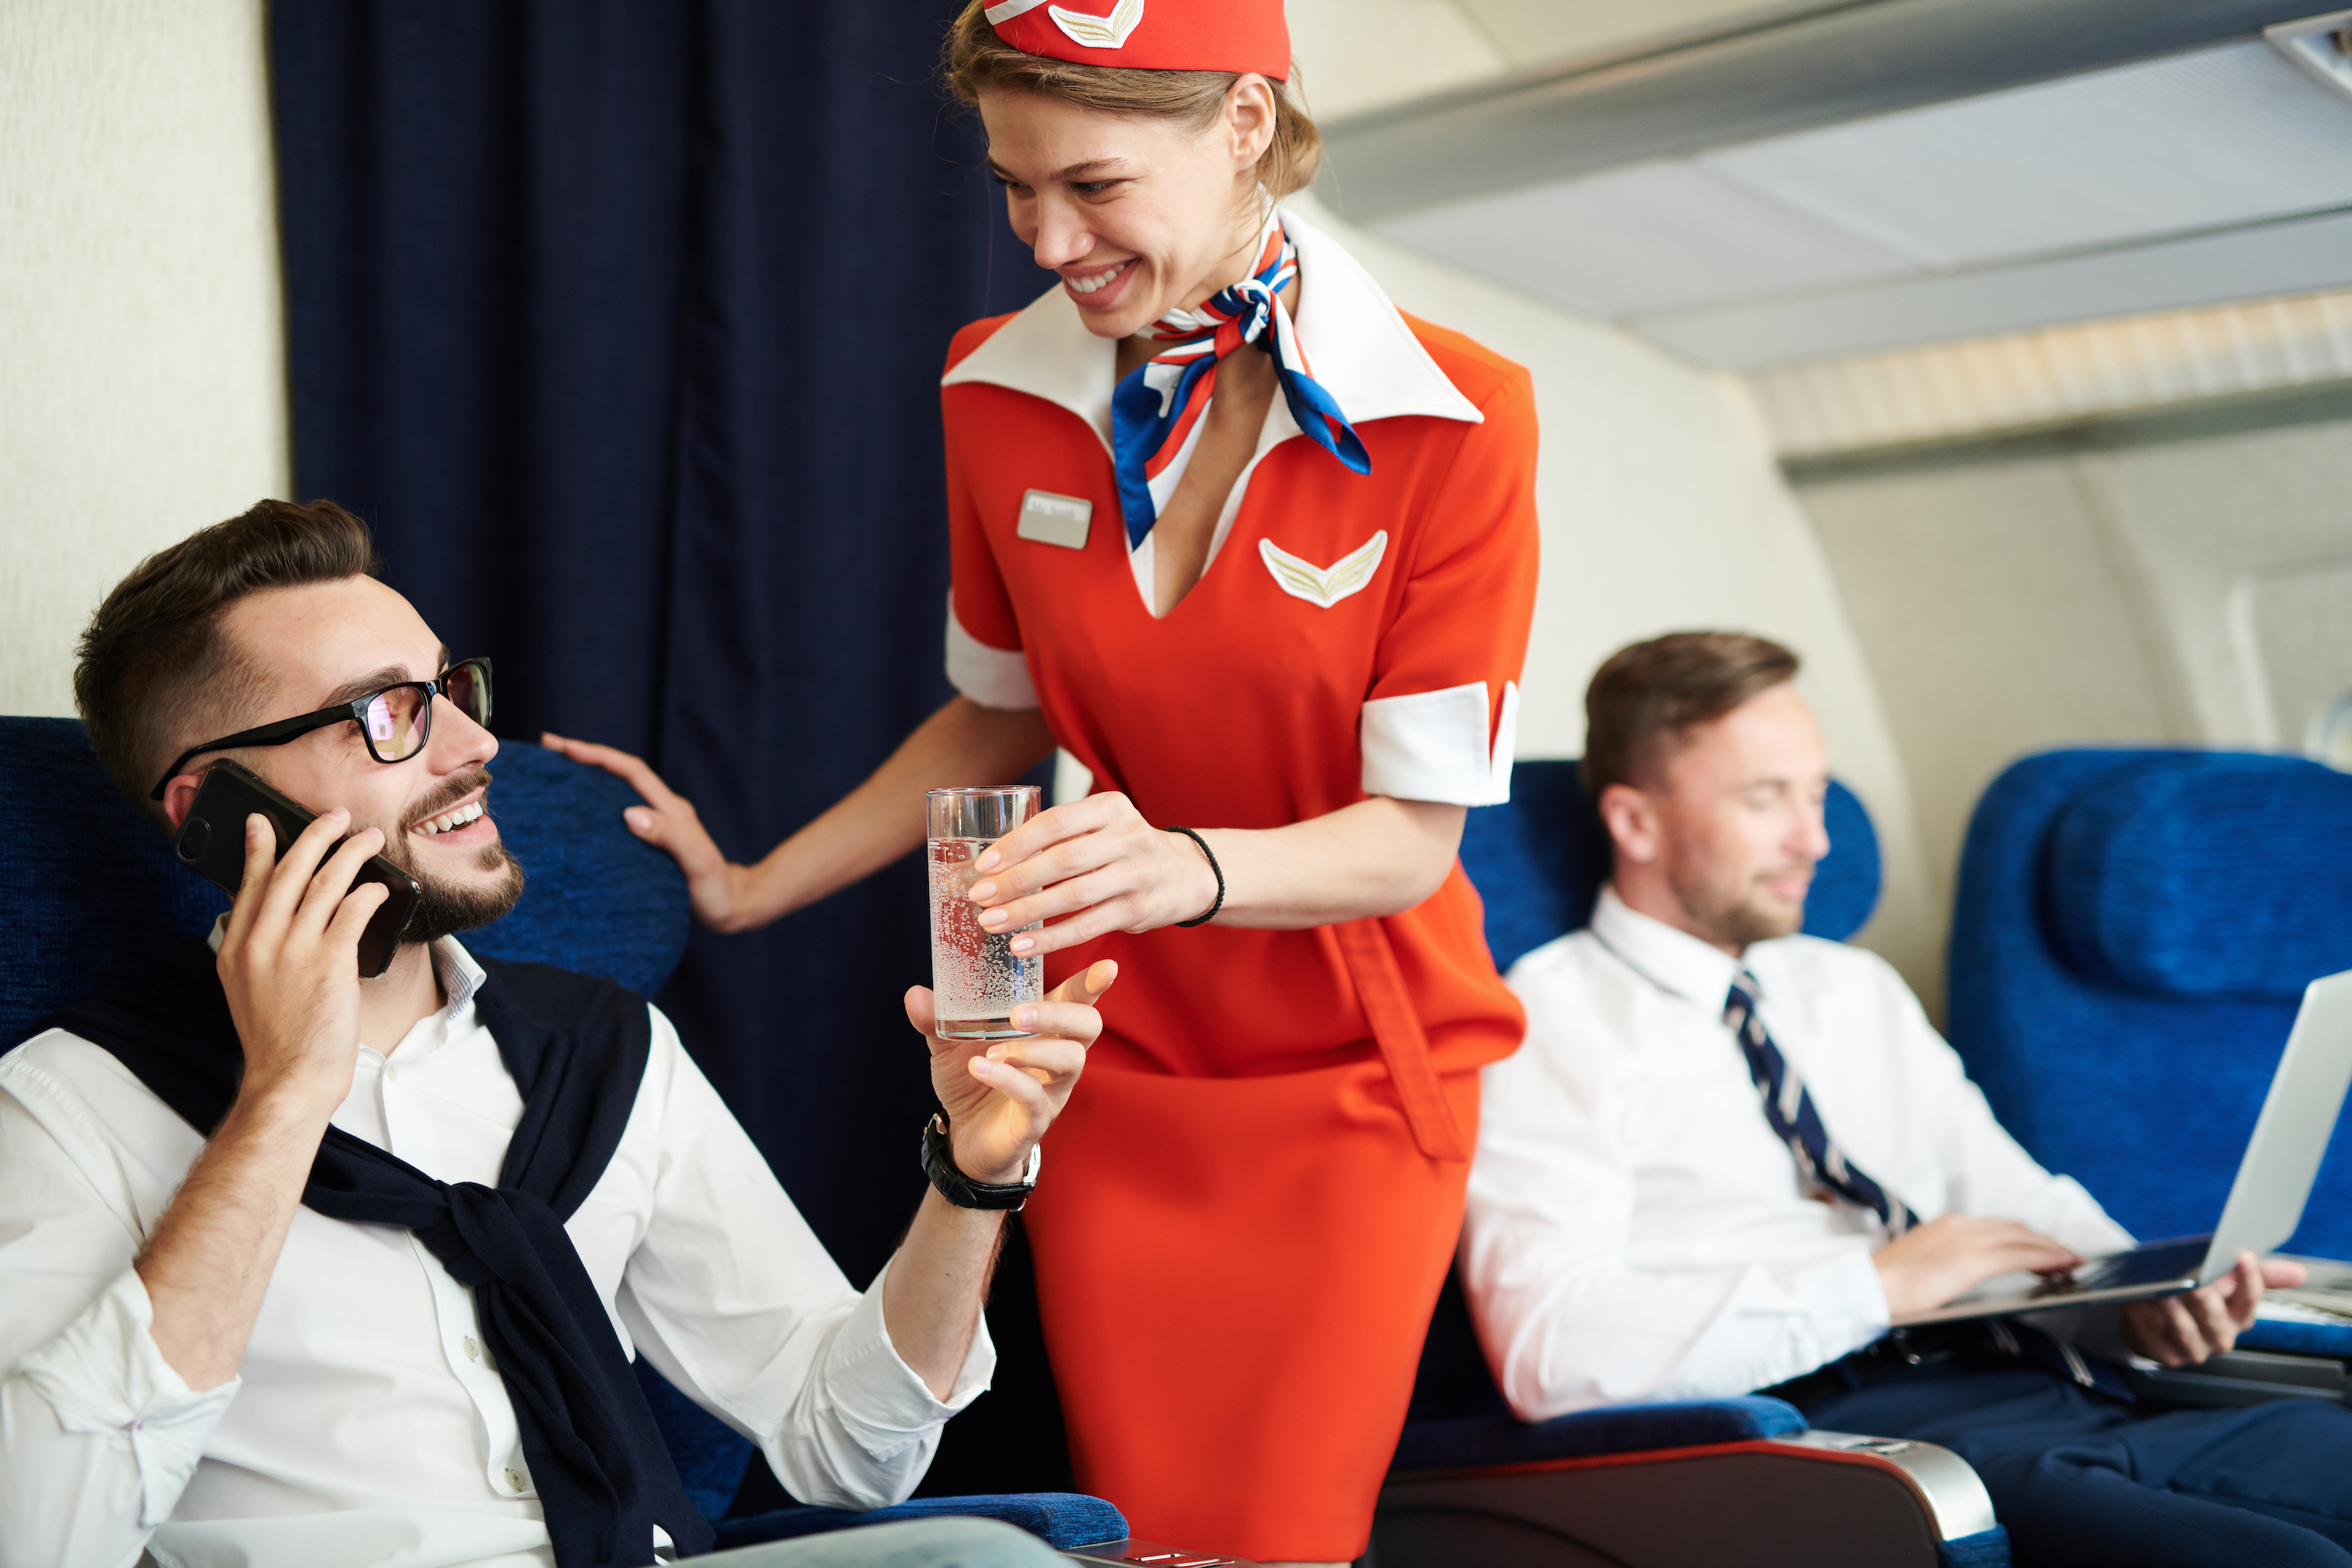 Becoming a flight attendant might be difficult in the post-COVID economy, but it's one of the most basic ways to make money while traveling.